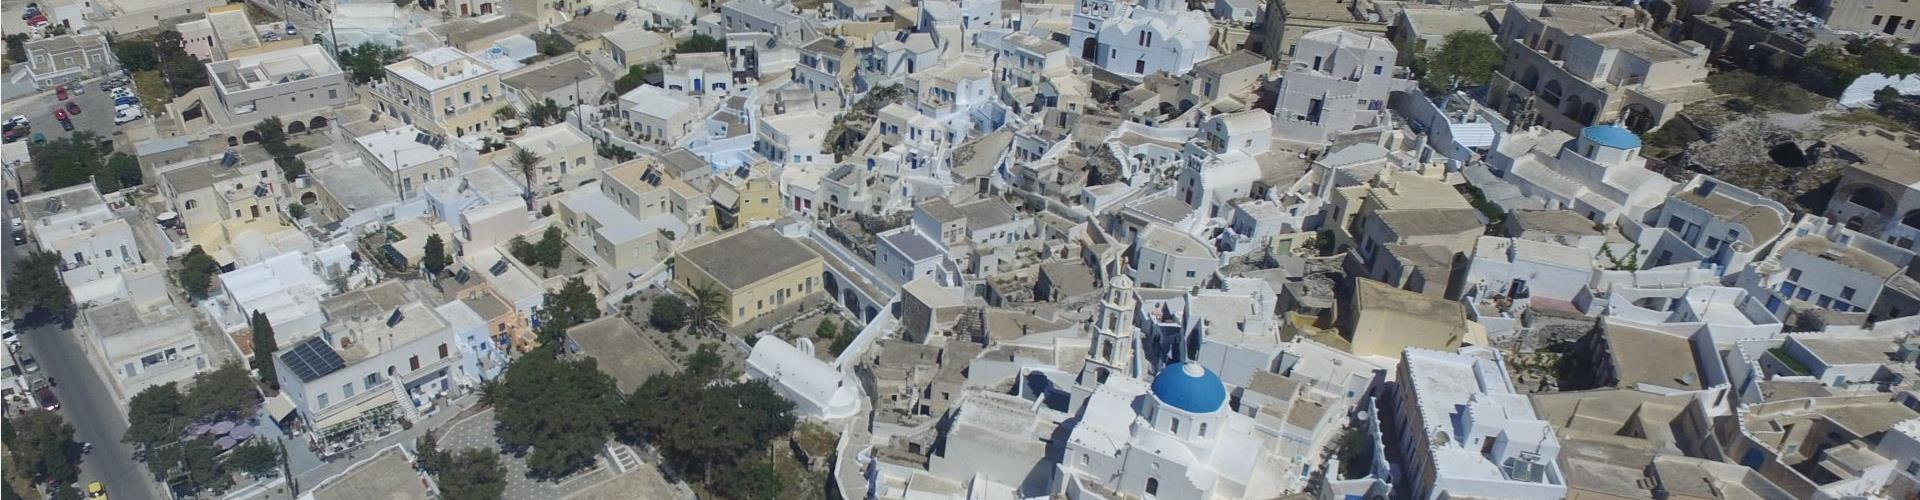 "Where does the name ""Santorini"" come from?"